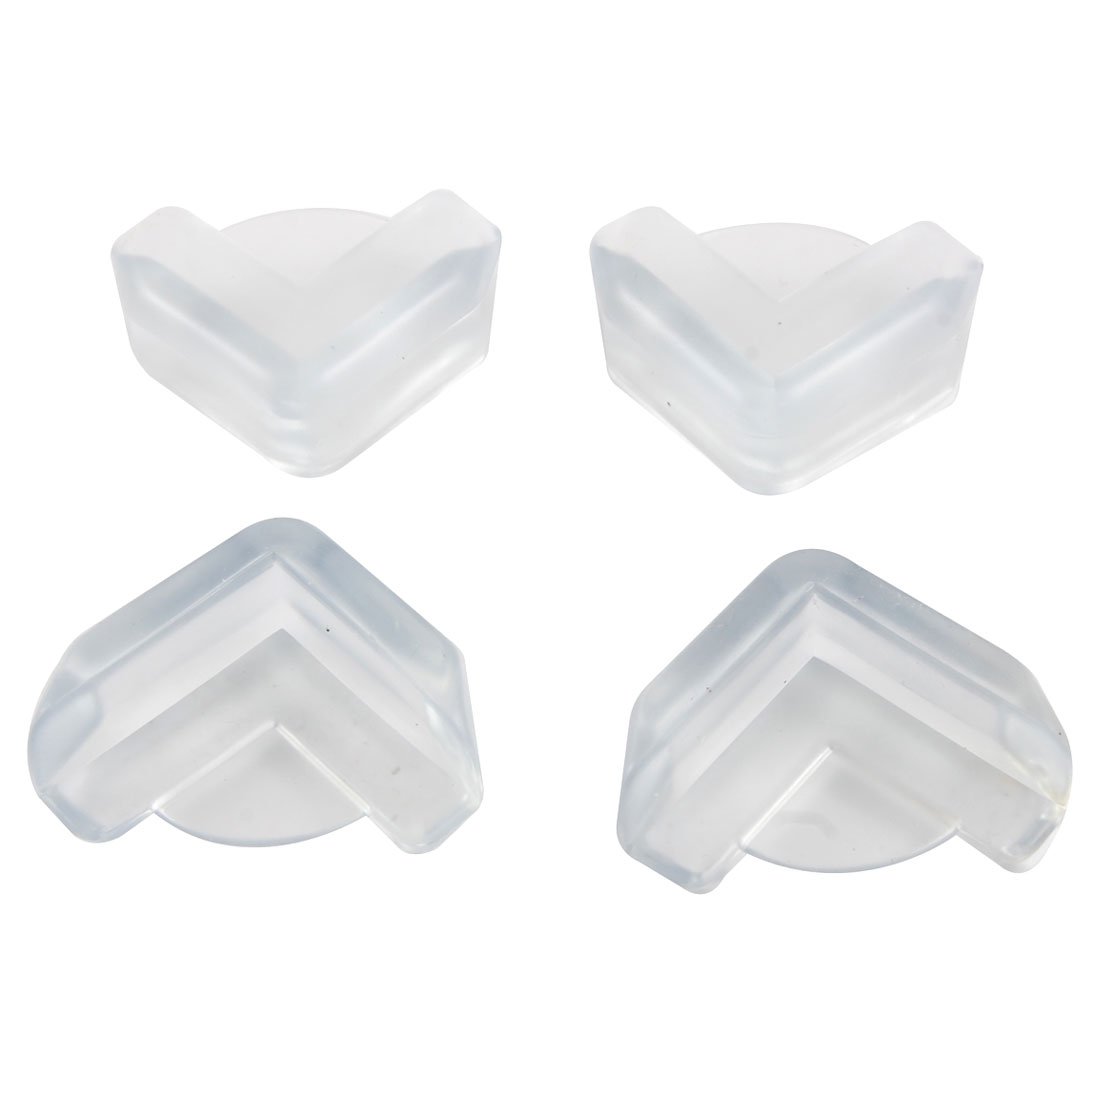 4 Pcs Home Soft Safe Cabinet Table Desk Corner Guard Protector Clear